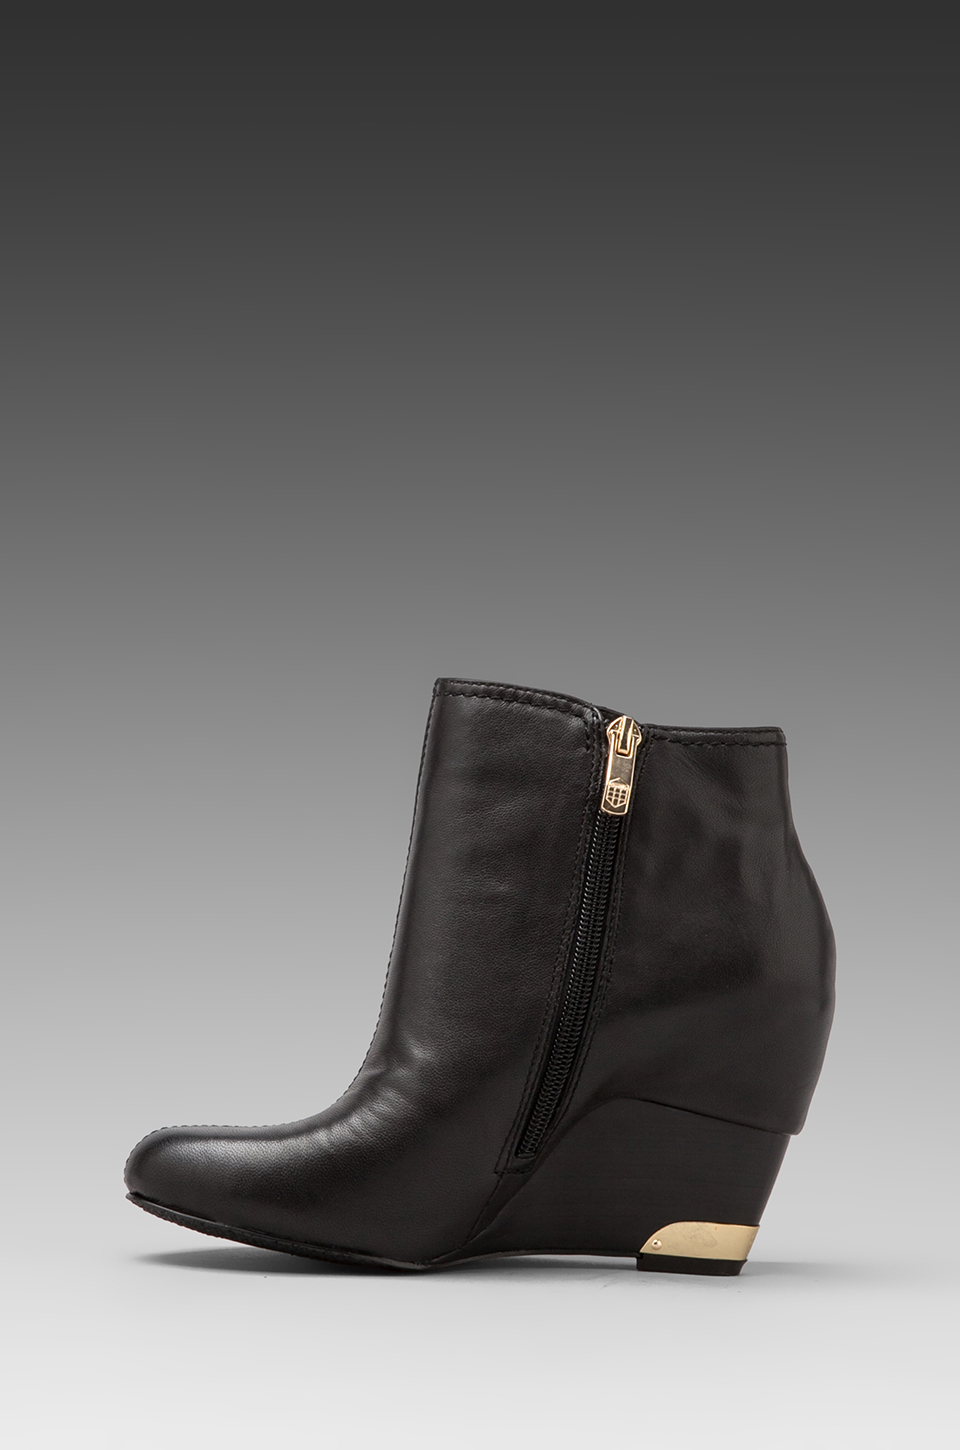 Lyst Vince Camuto Huxley Bootie In Black In Gray